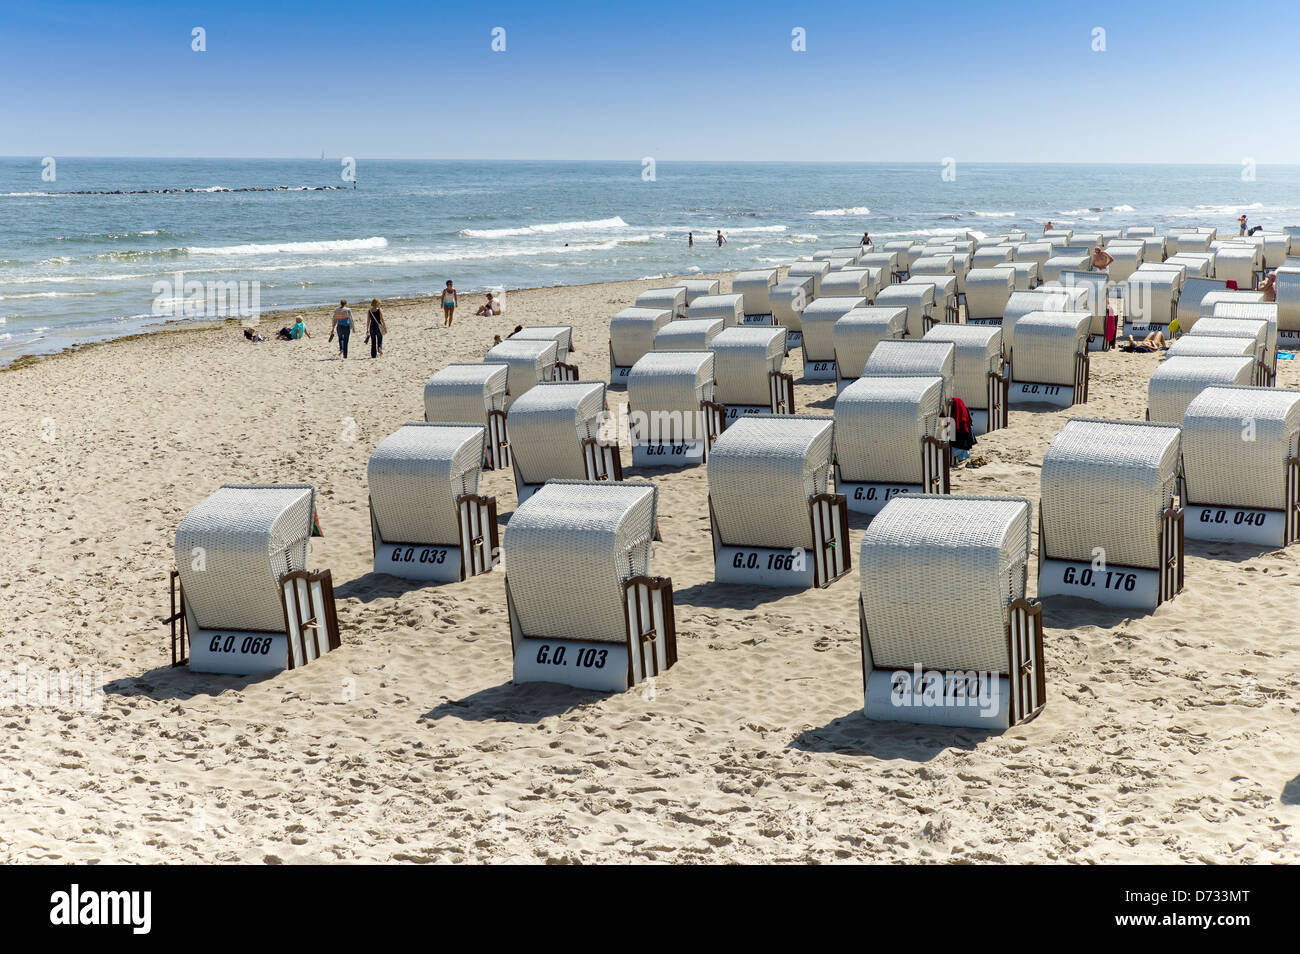 Sellin, Germany, Strandkoerbe on the beach of Sellin - Stock Image